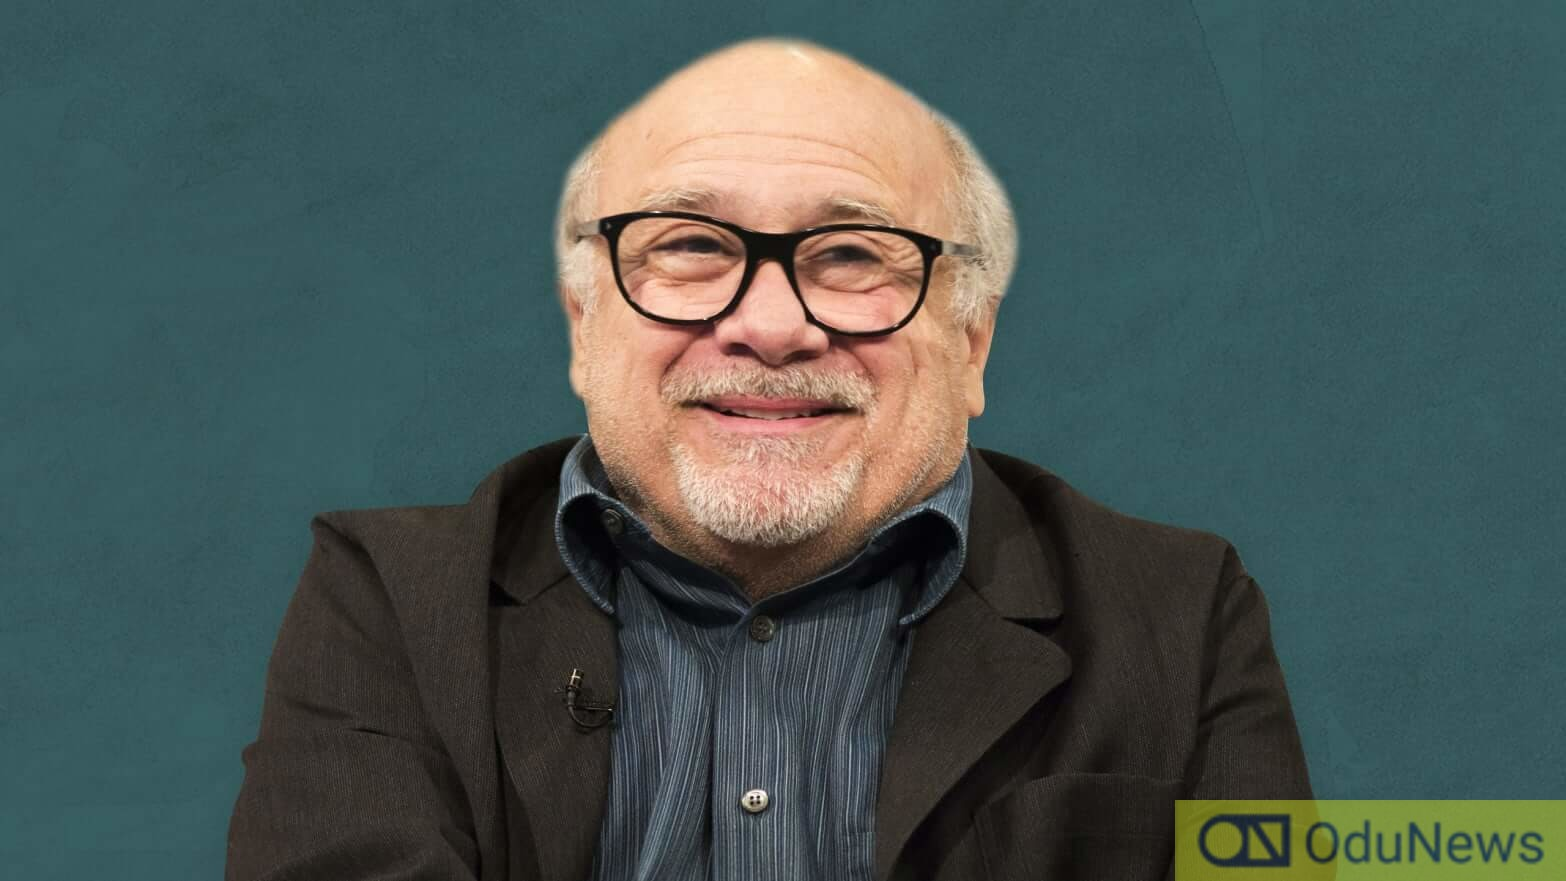 Danny DeVito's voice work is responsible for most the film's humor